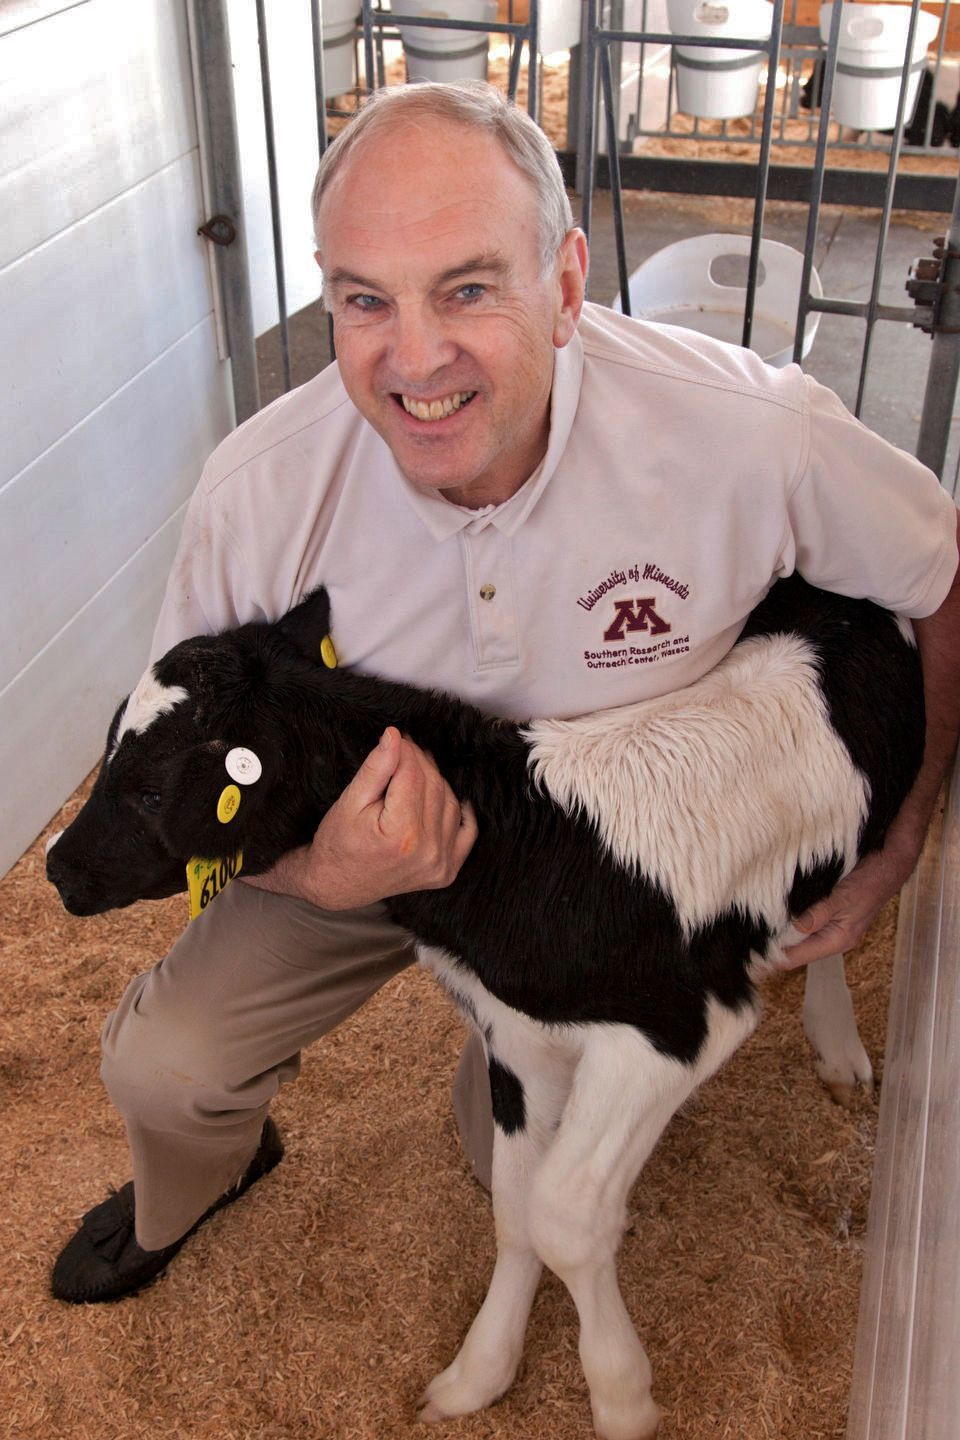 Use nutritional strategies for starting calves | Business